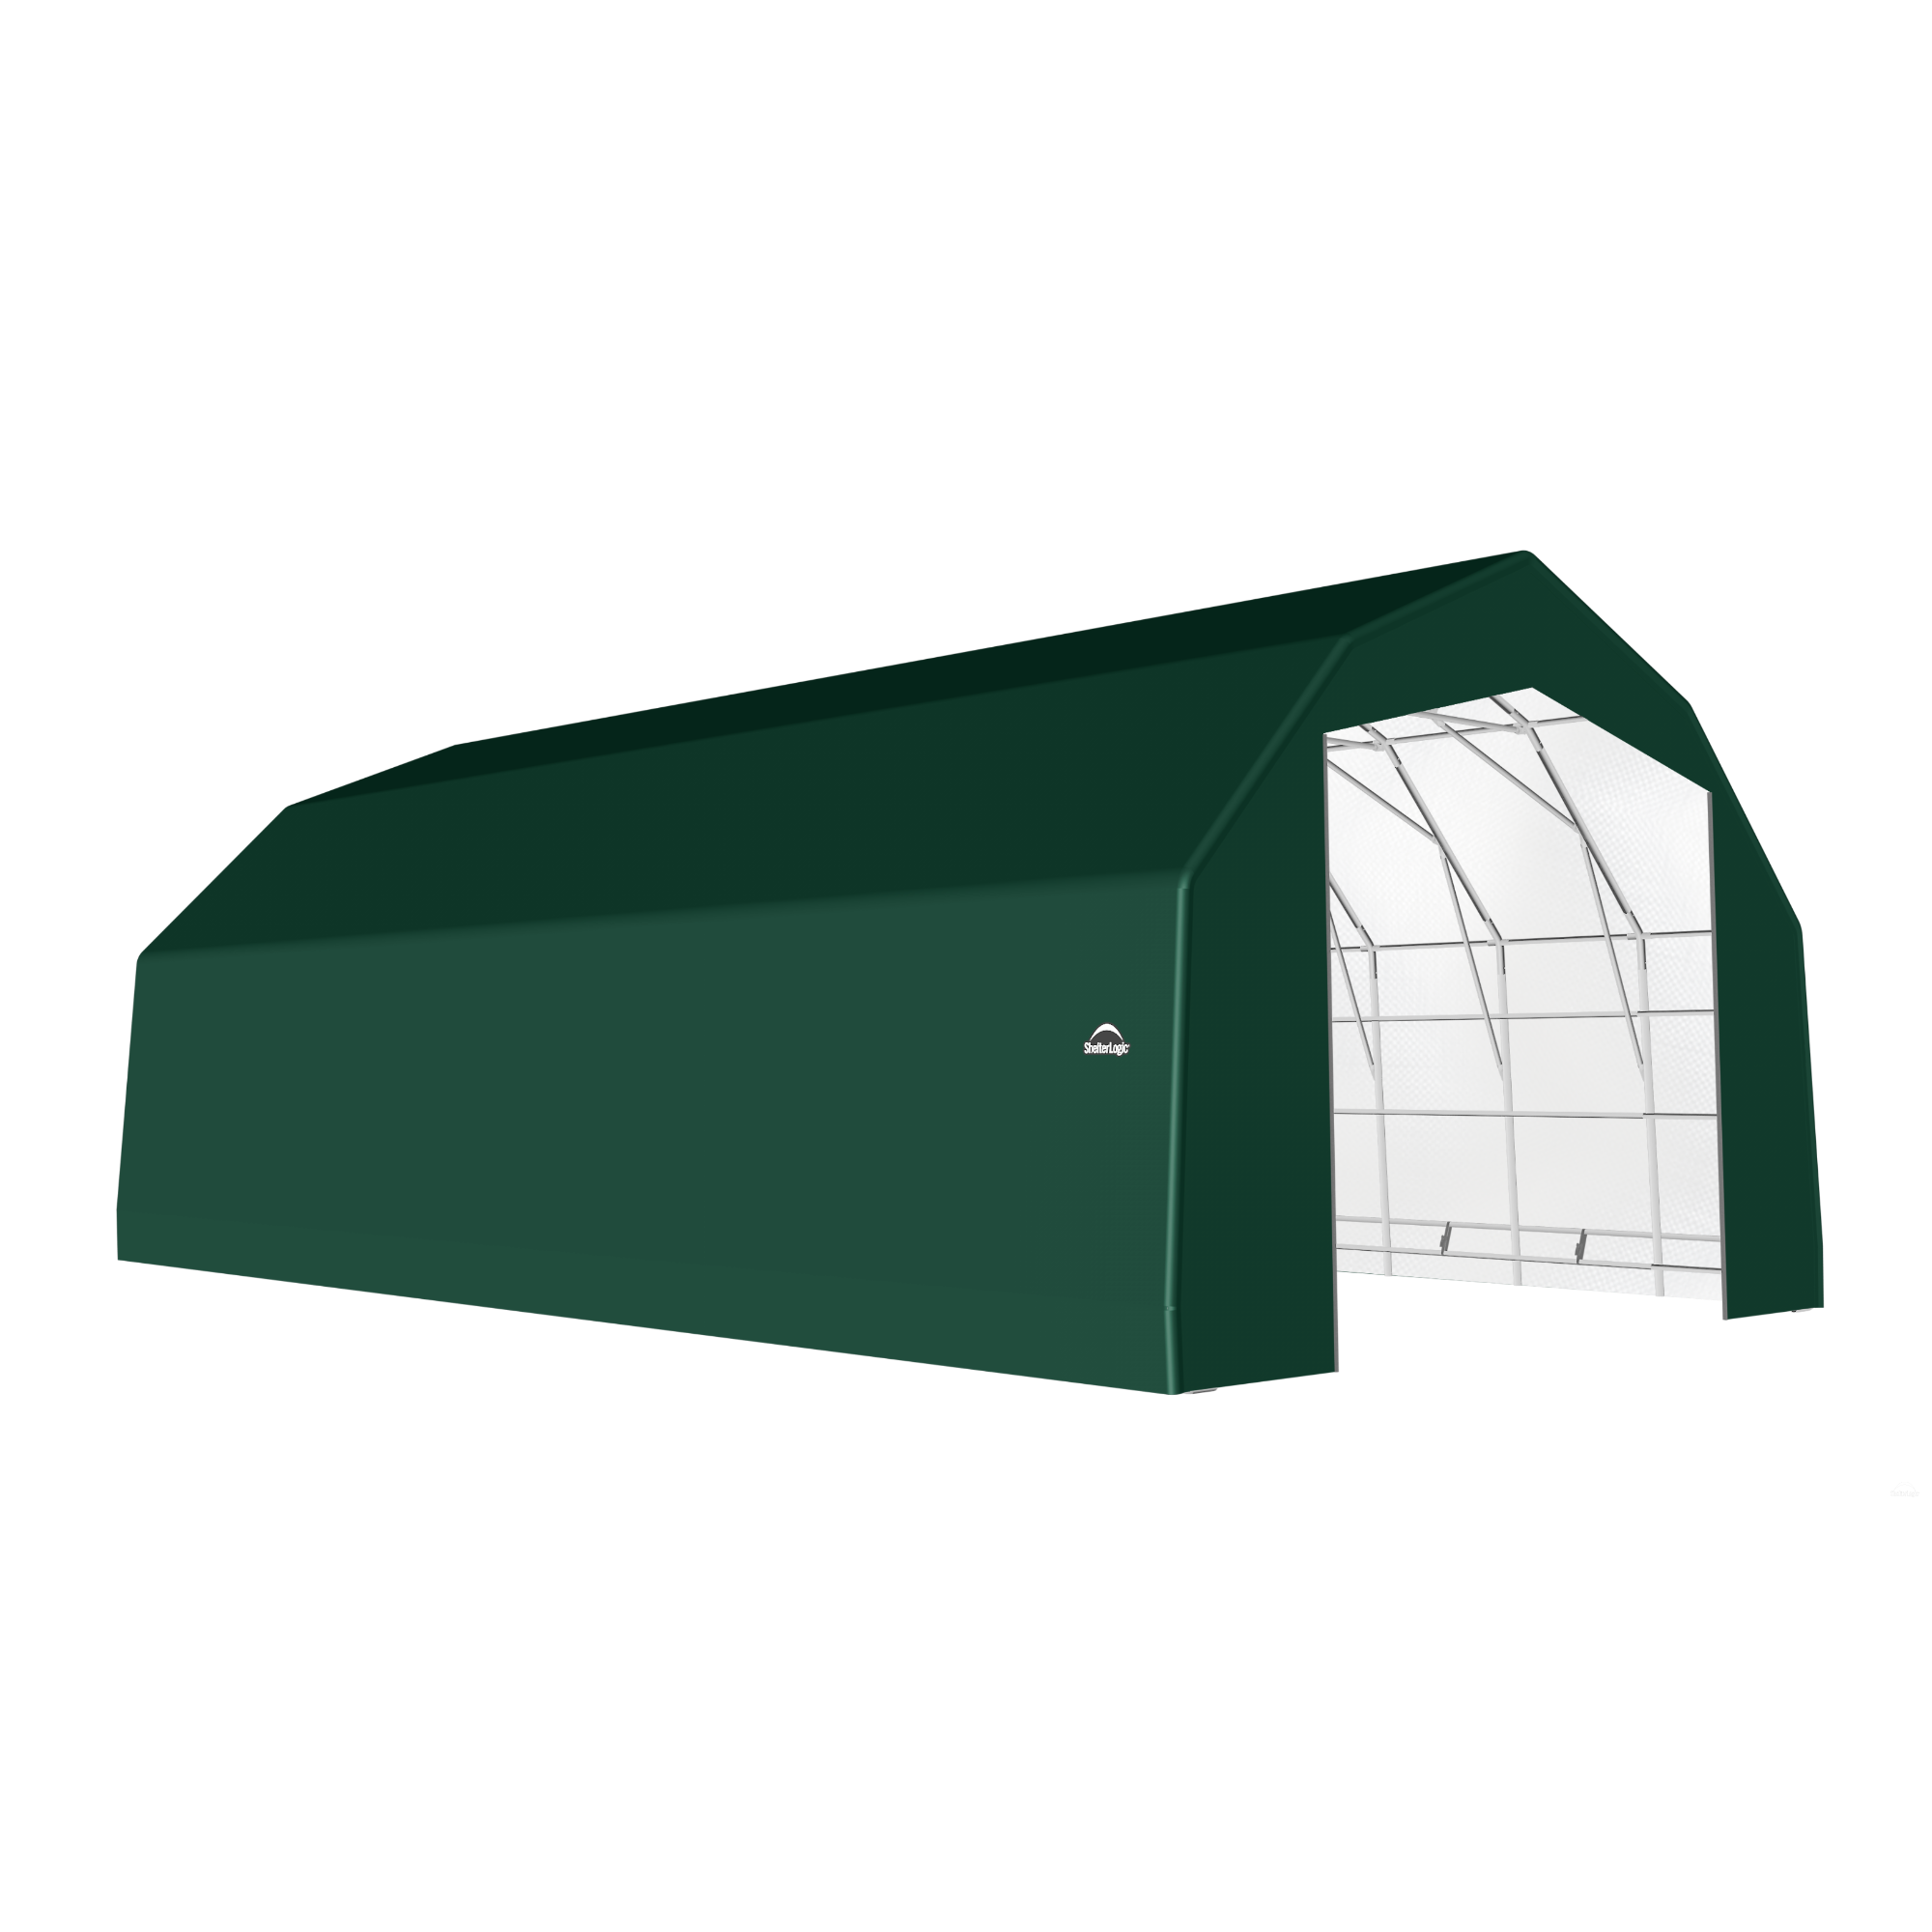 SP Barn 25X44X17 Green 14 oz PE Shelter